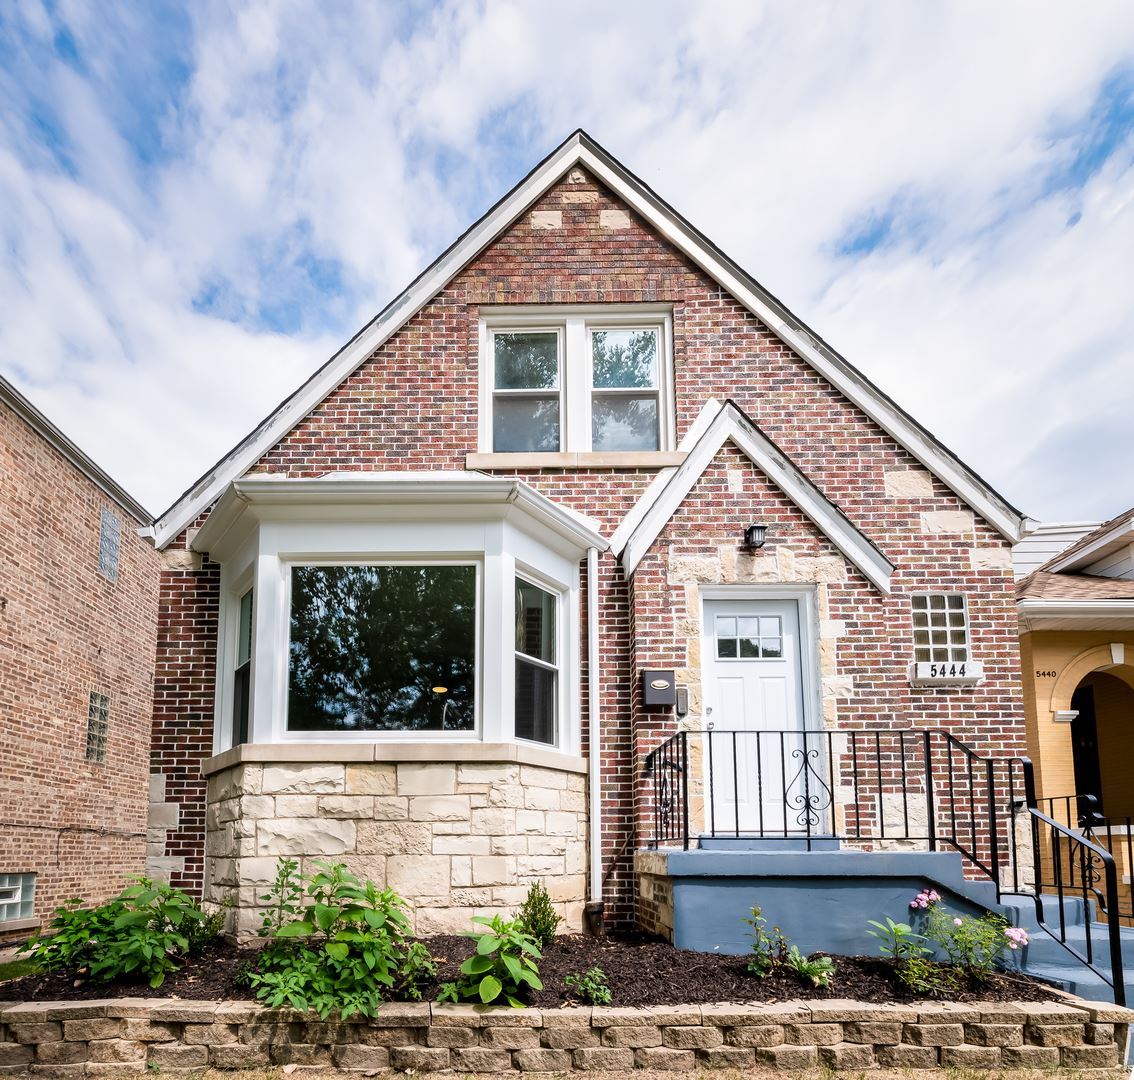 5444 W Cornelia Avenue, Chicago, IL 60641 - #: 10756534